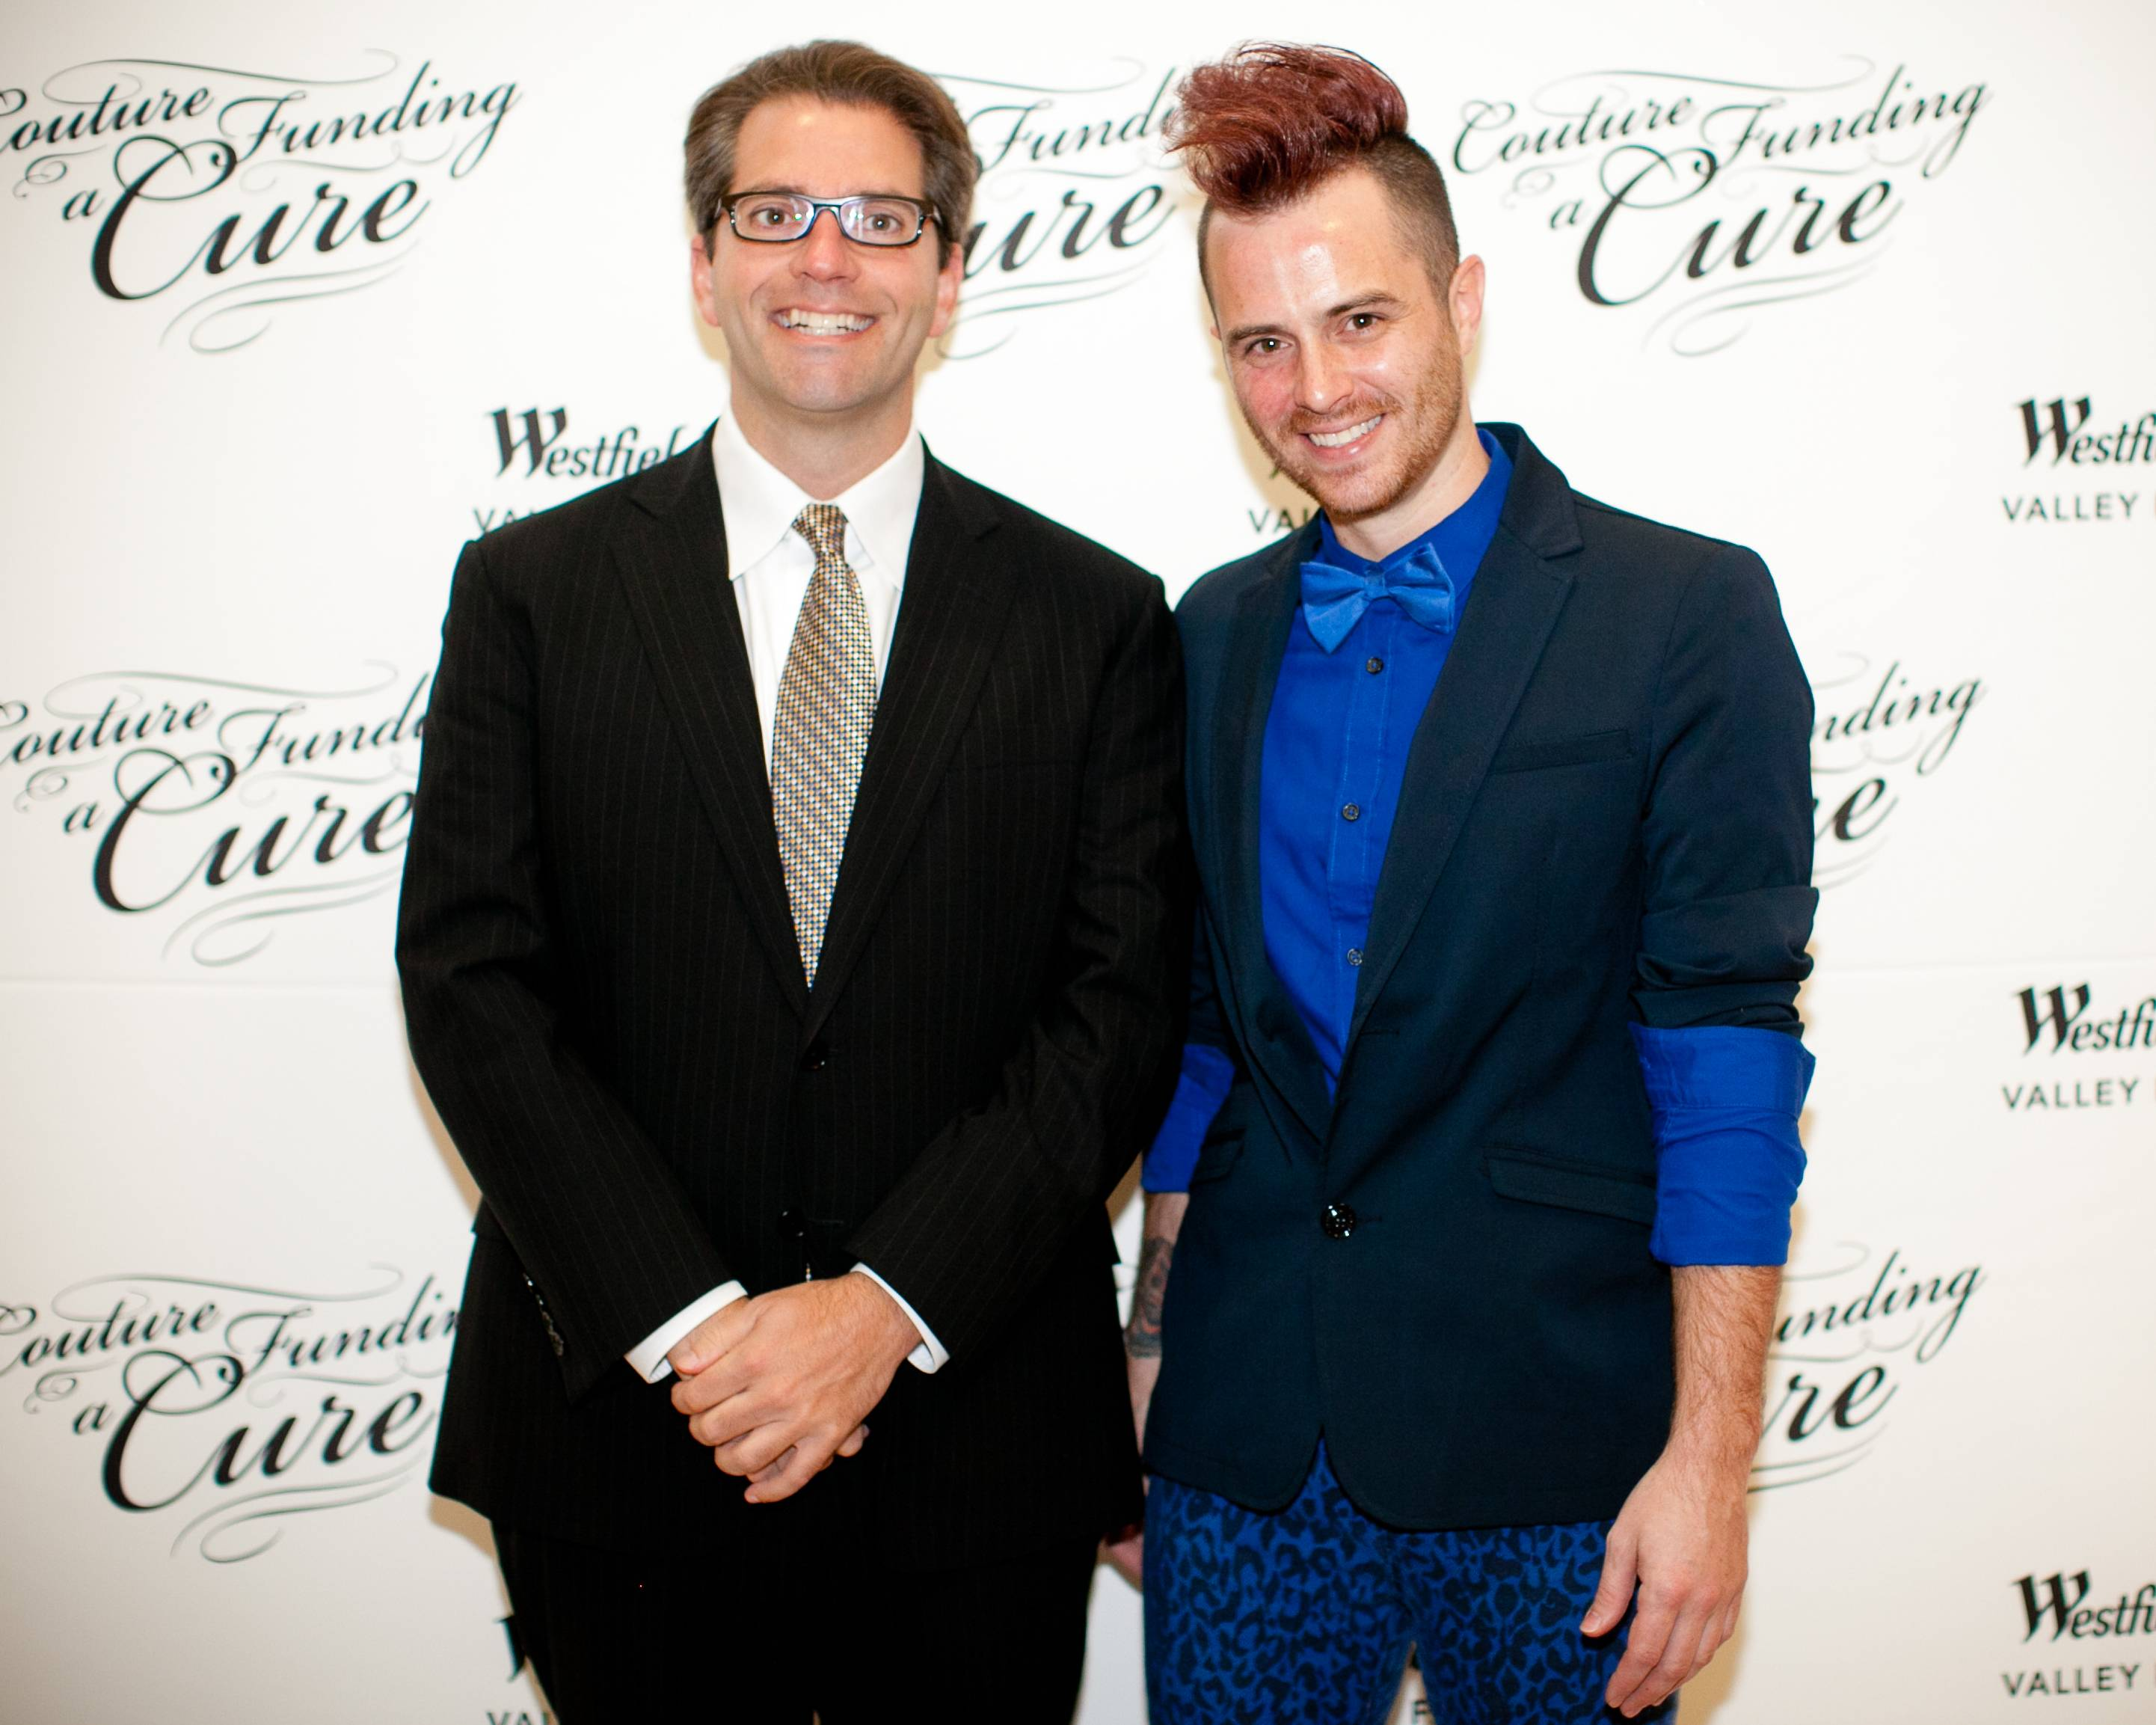 Pierluigi Oliverio, District 6 representative on the San Jose City Council, and Anthony Ryan Auld, Project Runway All Star designer on red carpet credit Moanalani Jeffery (1)